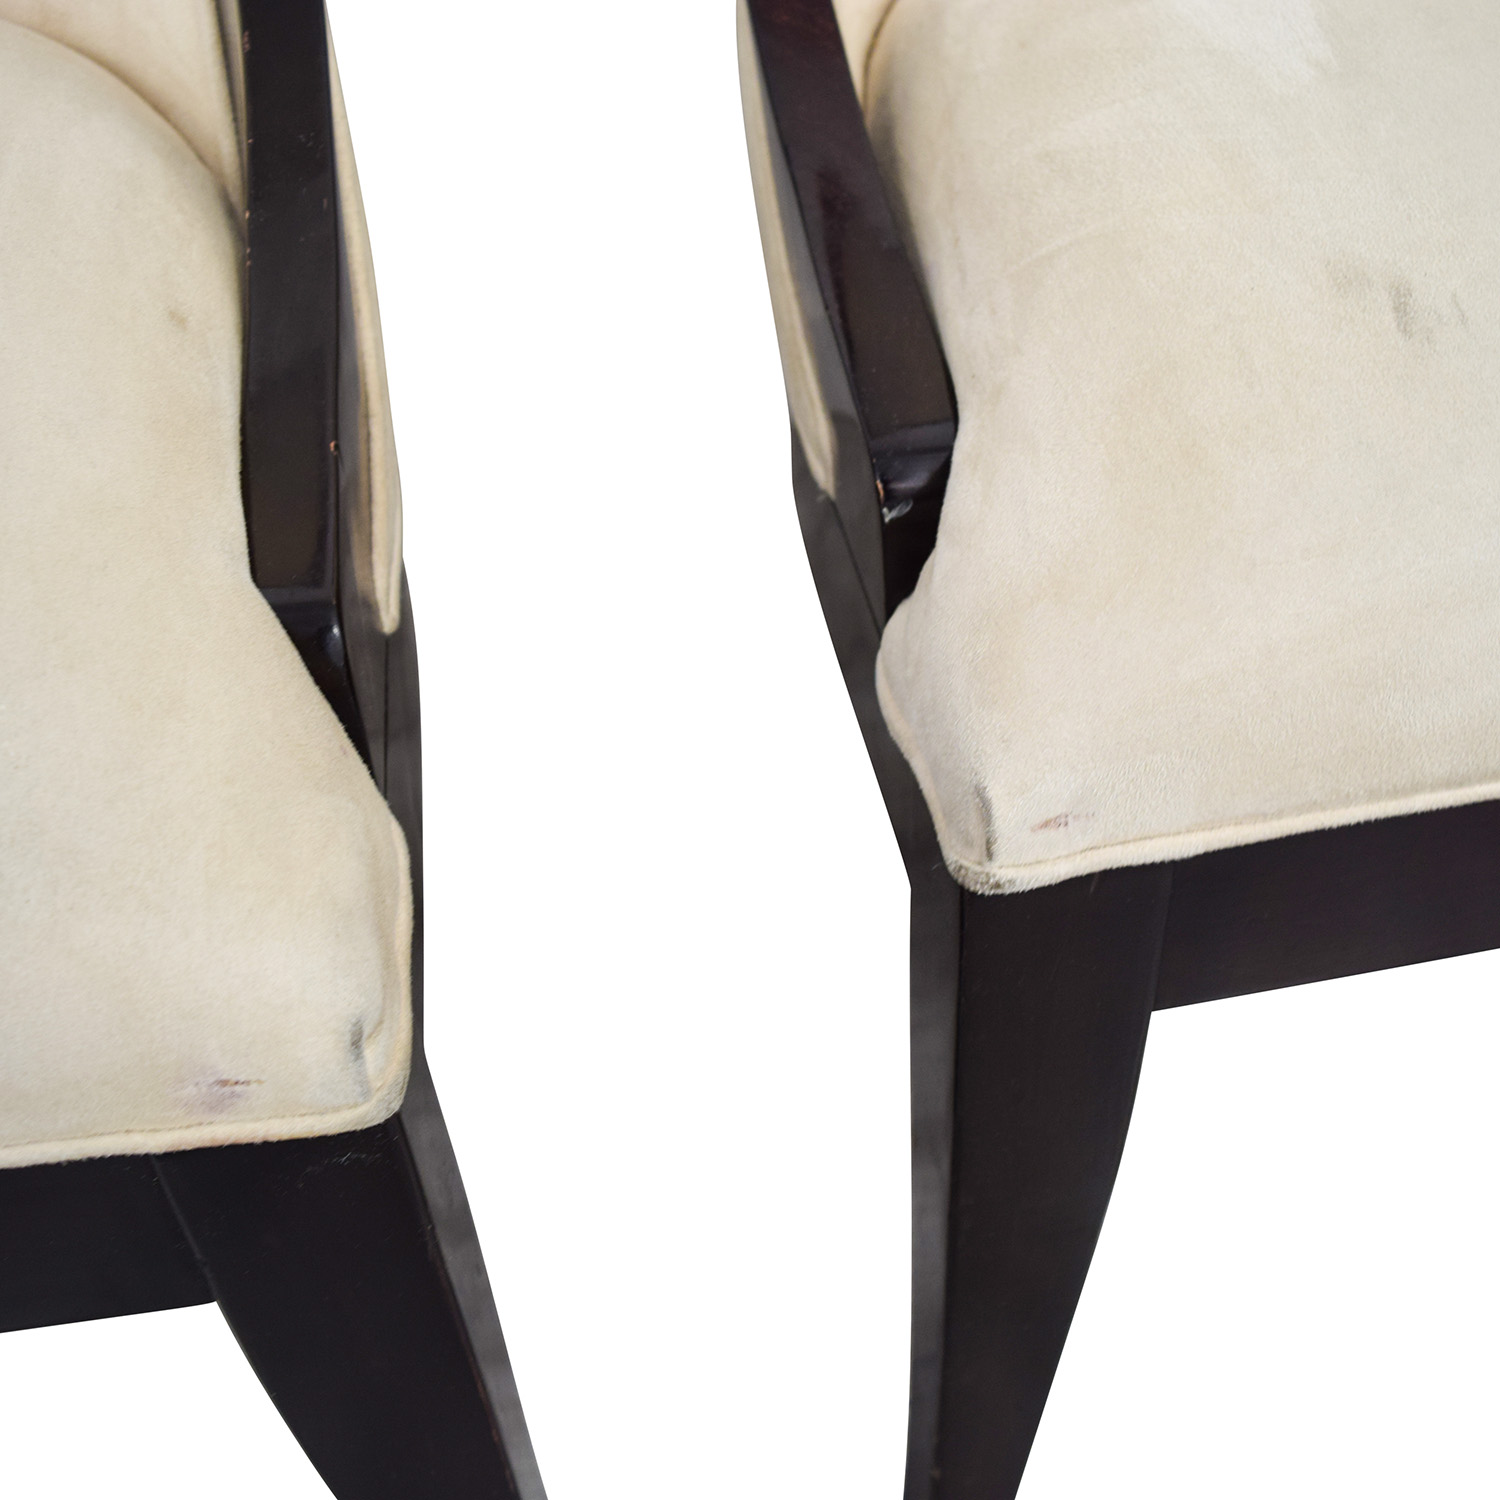 Restoration Hardware Restoration Hardware Cream Upholstered Dining Chairs second hand